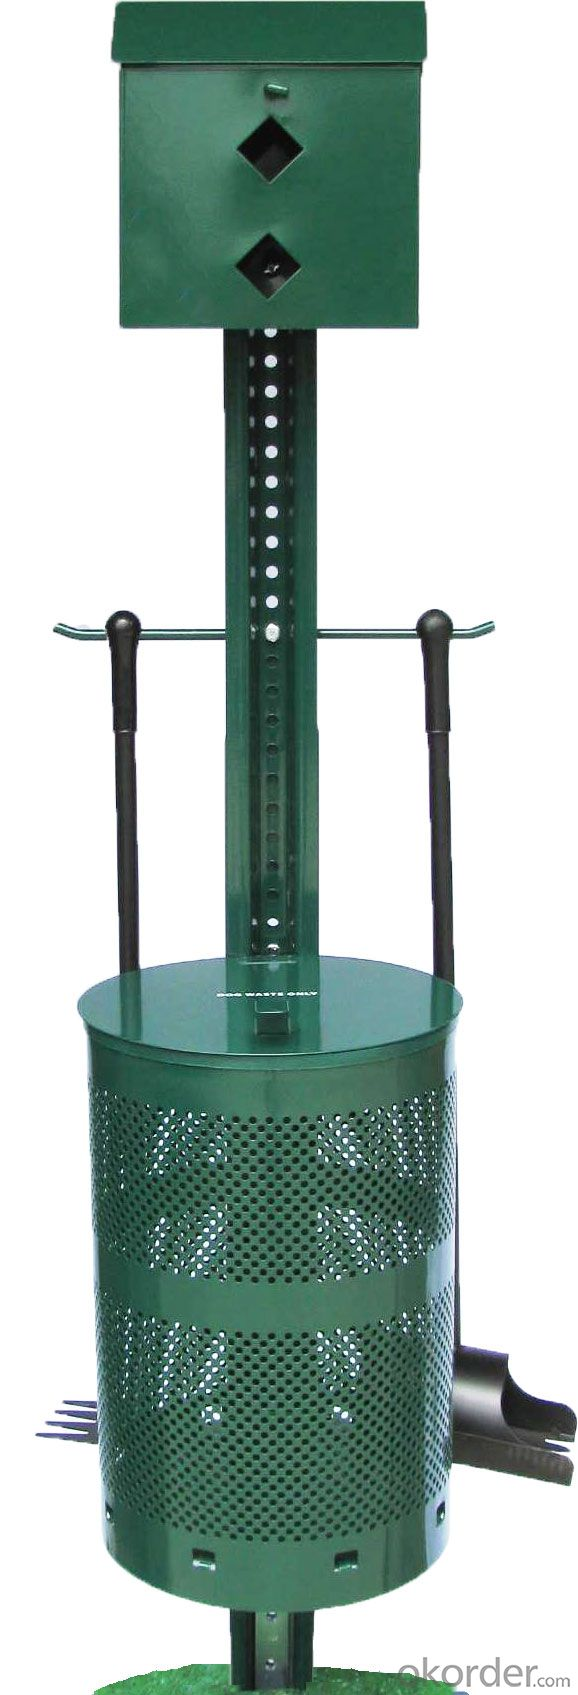 Dog Products Metal Dog Waste Station for Homeowners or Small Animal Clinic